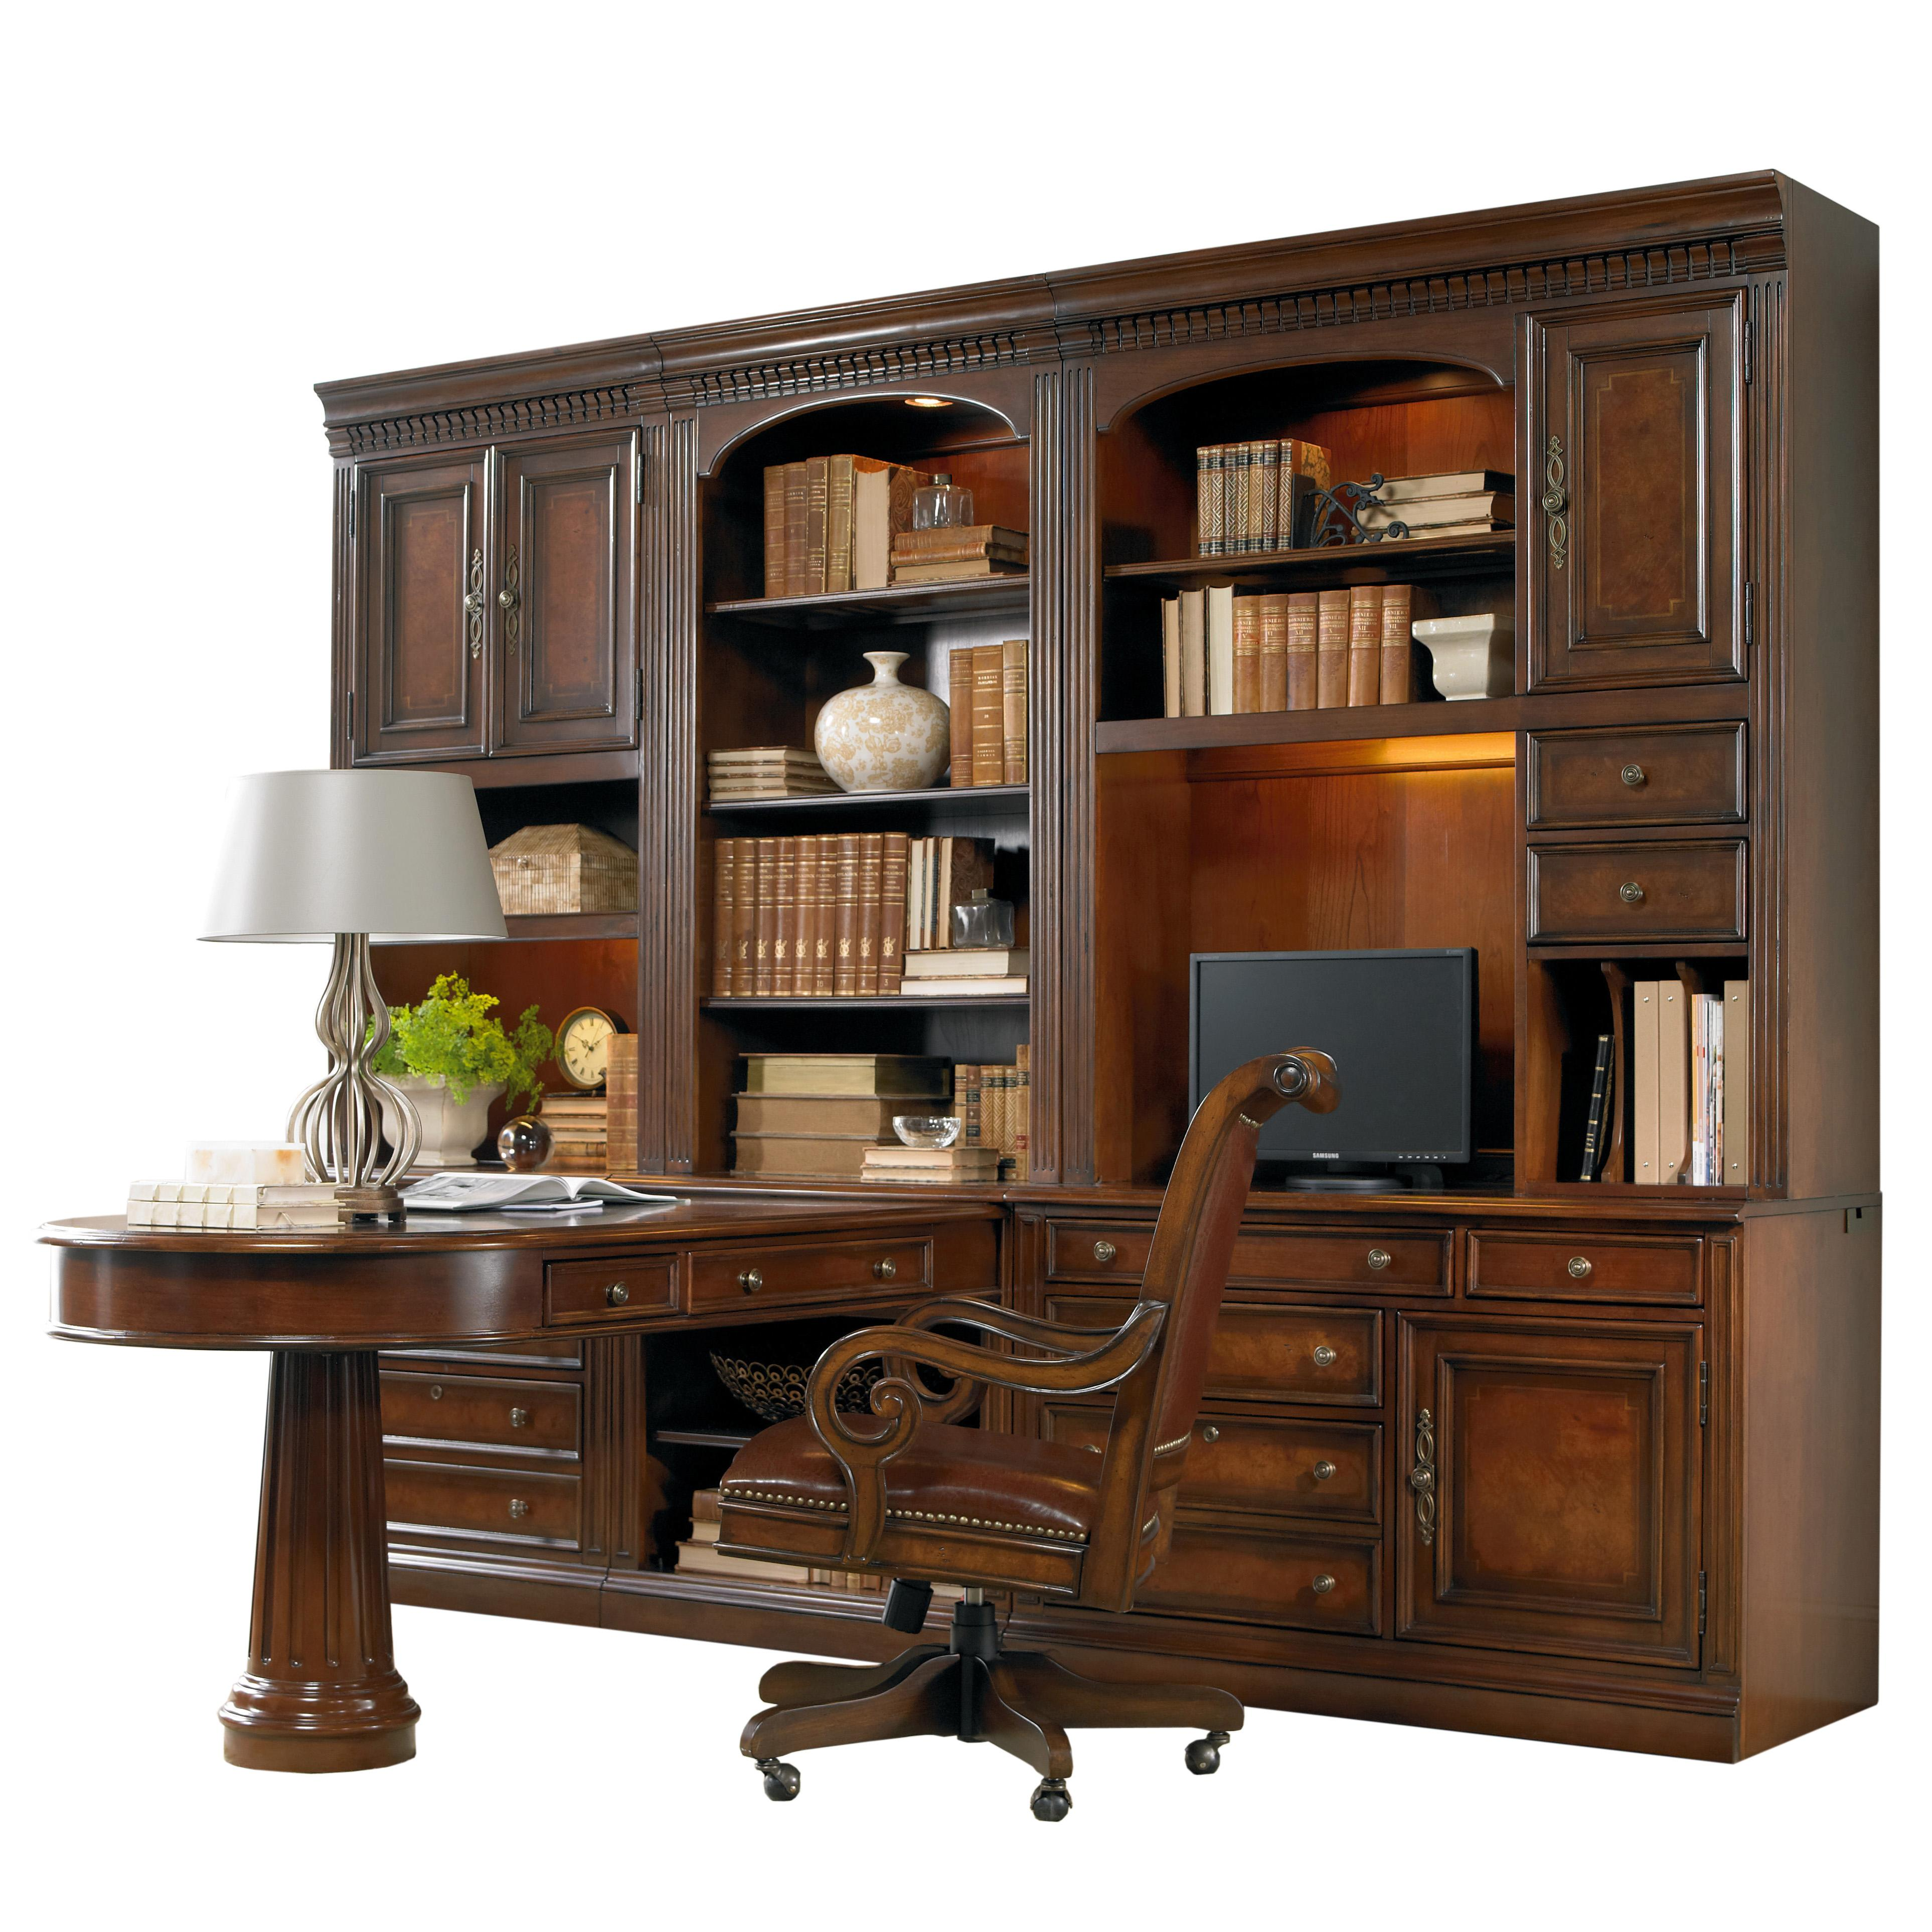 Strange European Renaissance Ii Office Wall Unit With Peninsula Desk Home Interior And Landscaping Spoatsignezvosmurscom